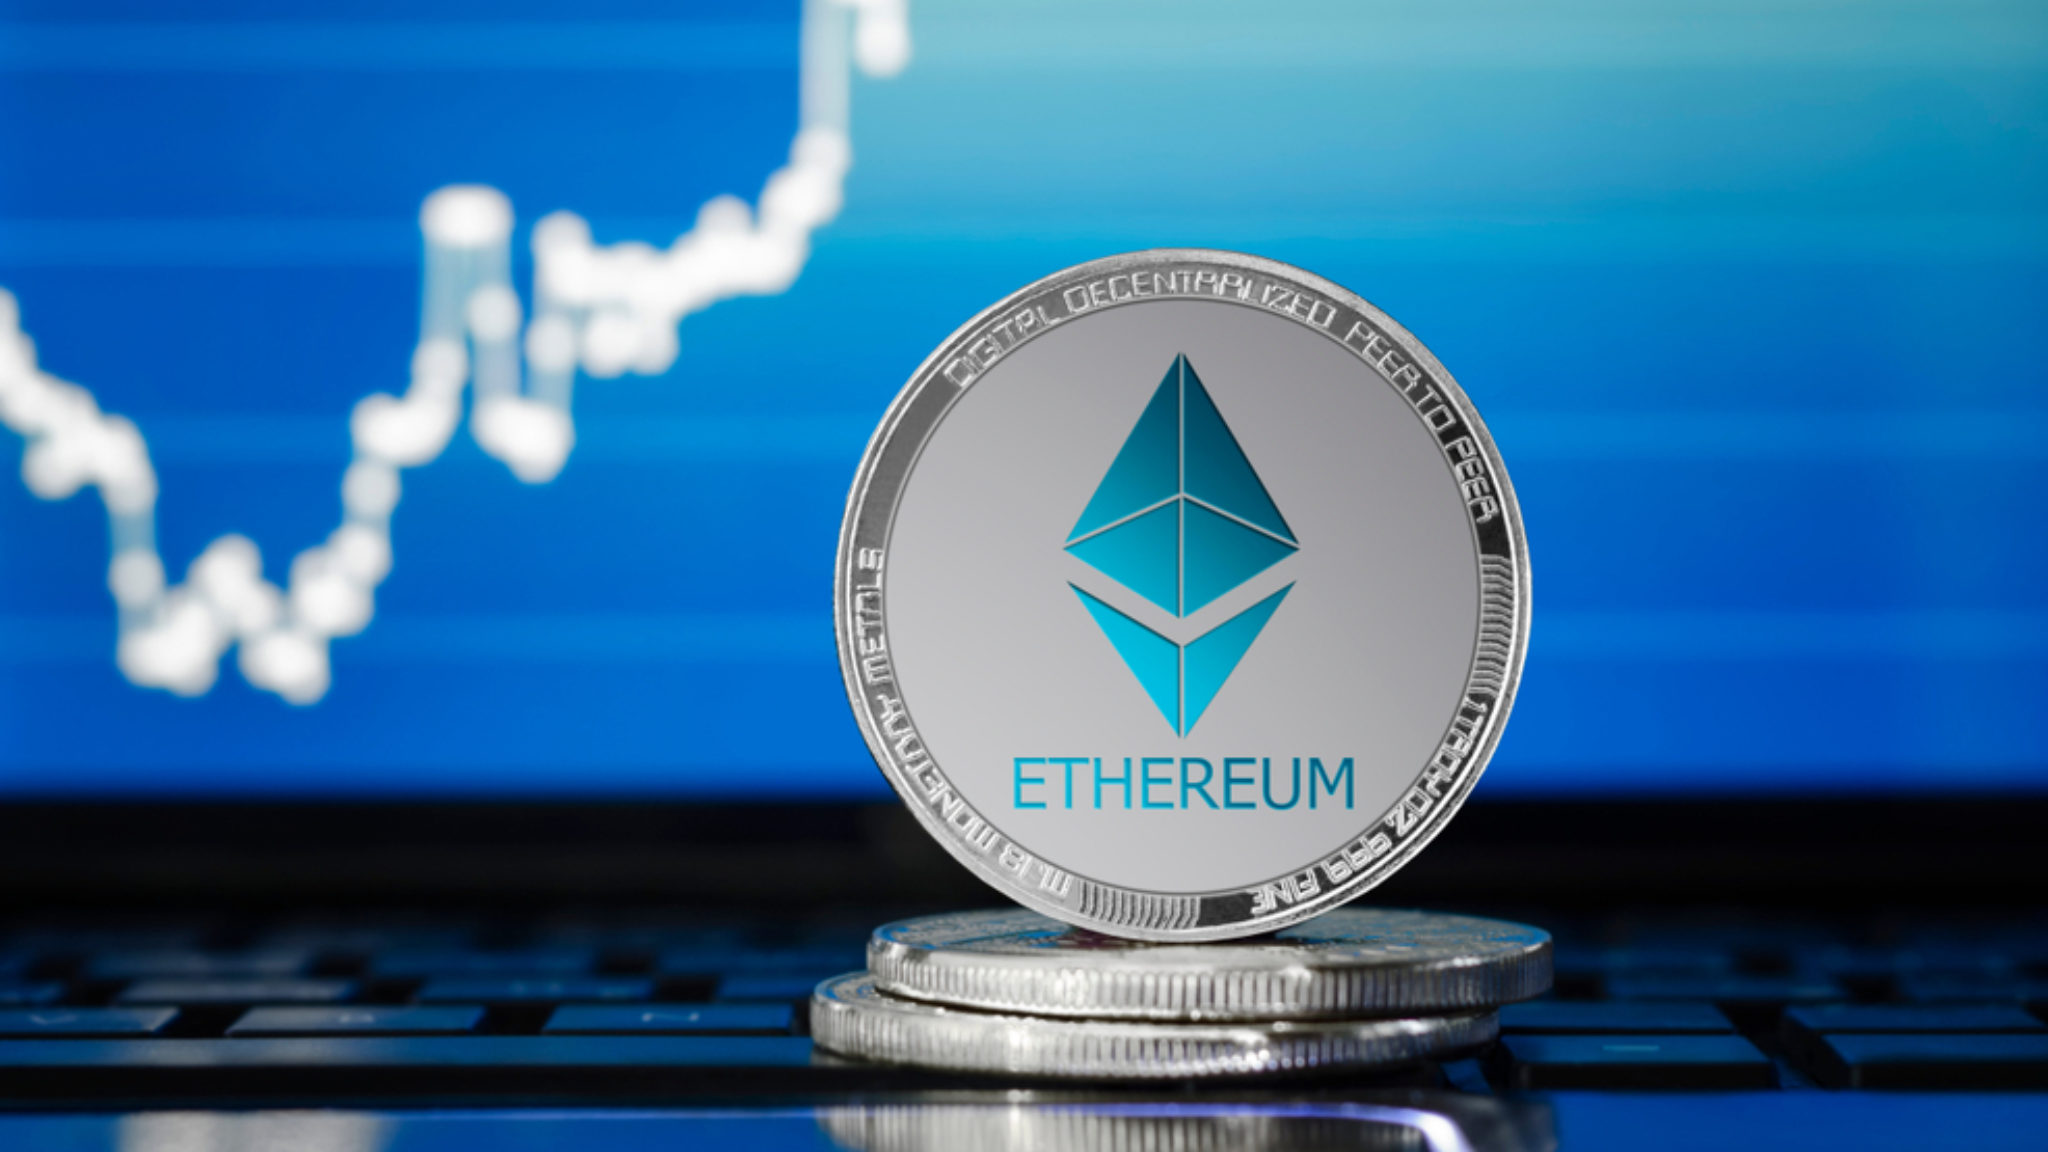 Ethereum Price Facing Ultimate Correction To $100: What's Going To Save The Bulls?